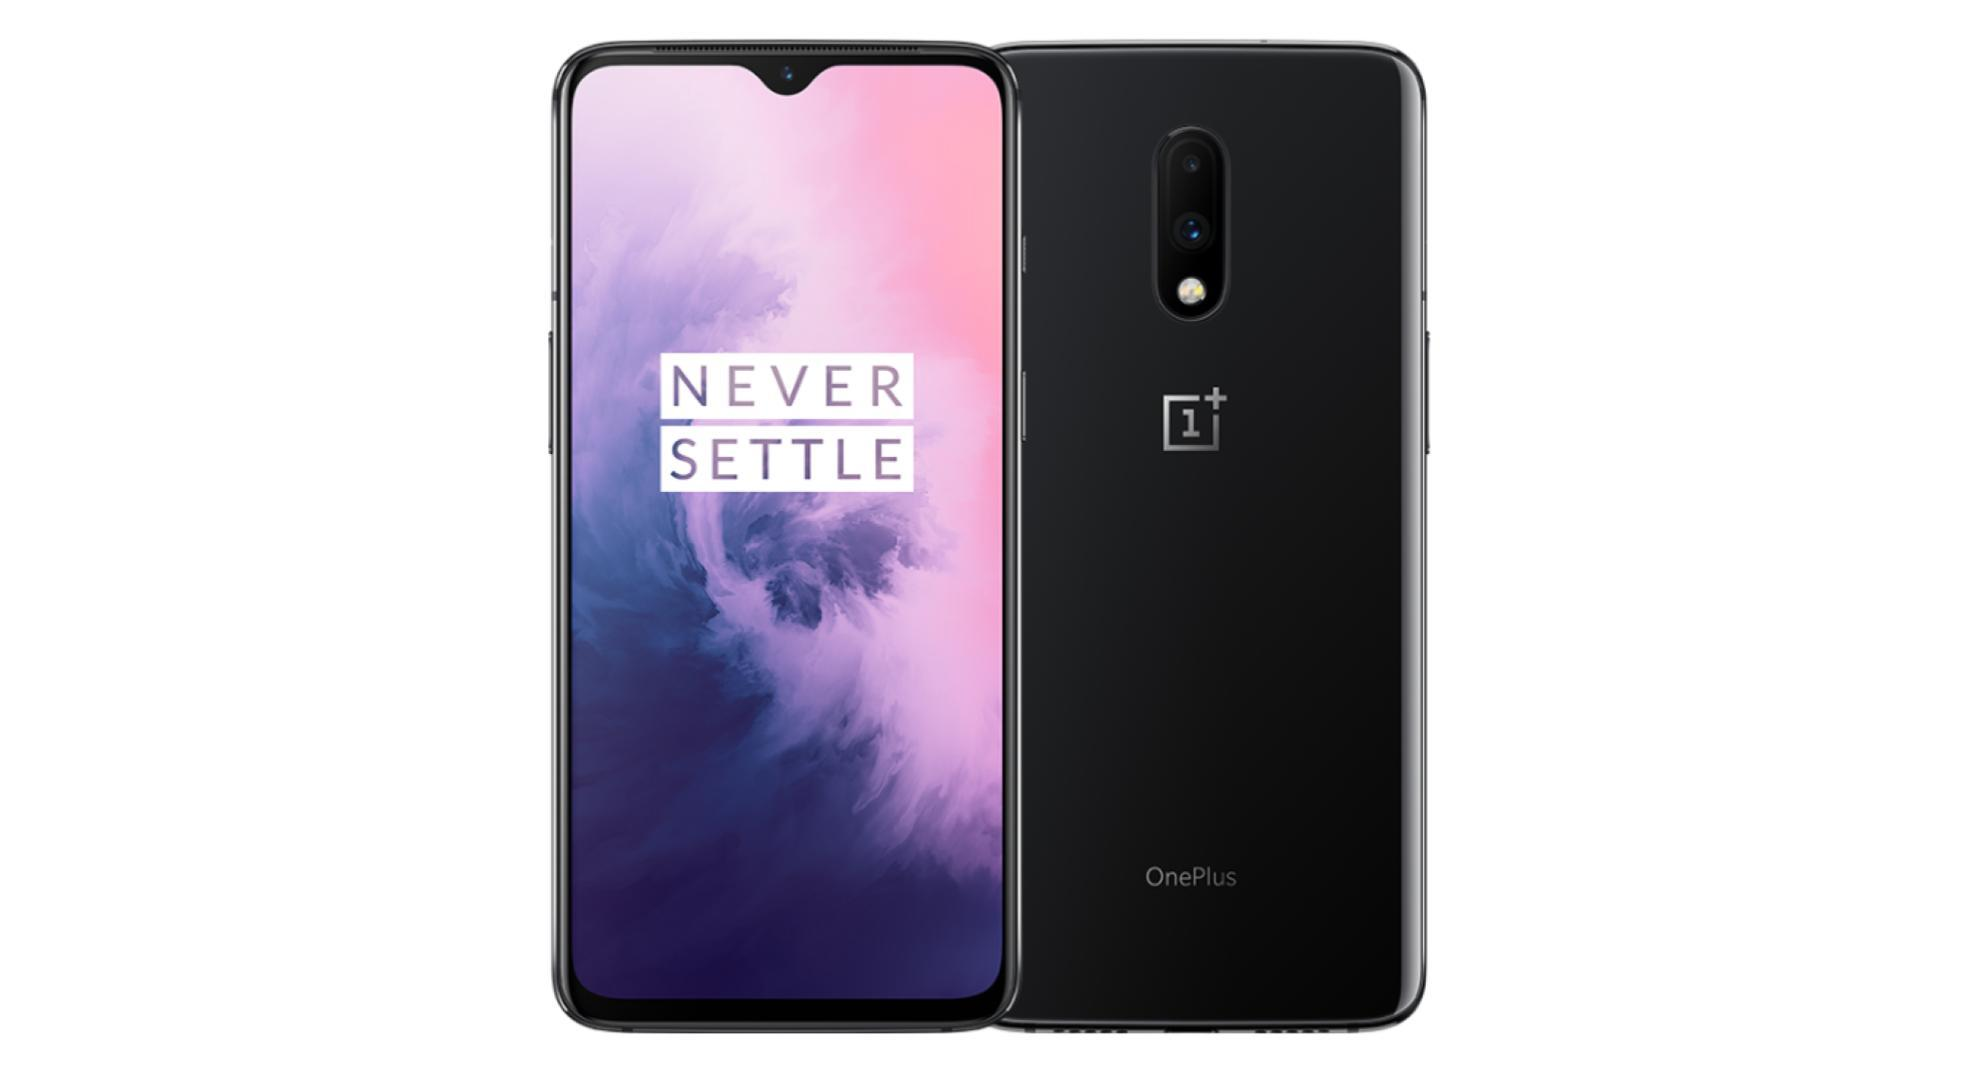 La version 8/256 Go du OnePlus 7 passe à 404 euros, soit 33% de réduction